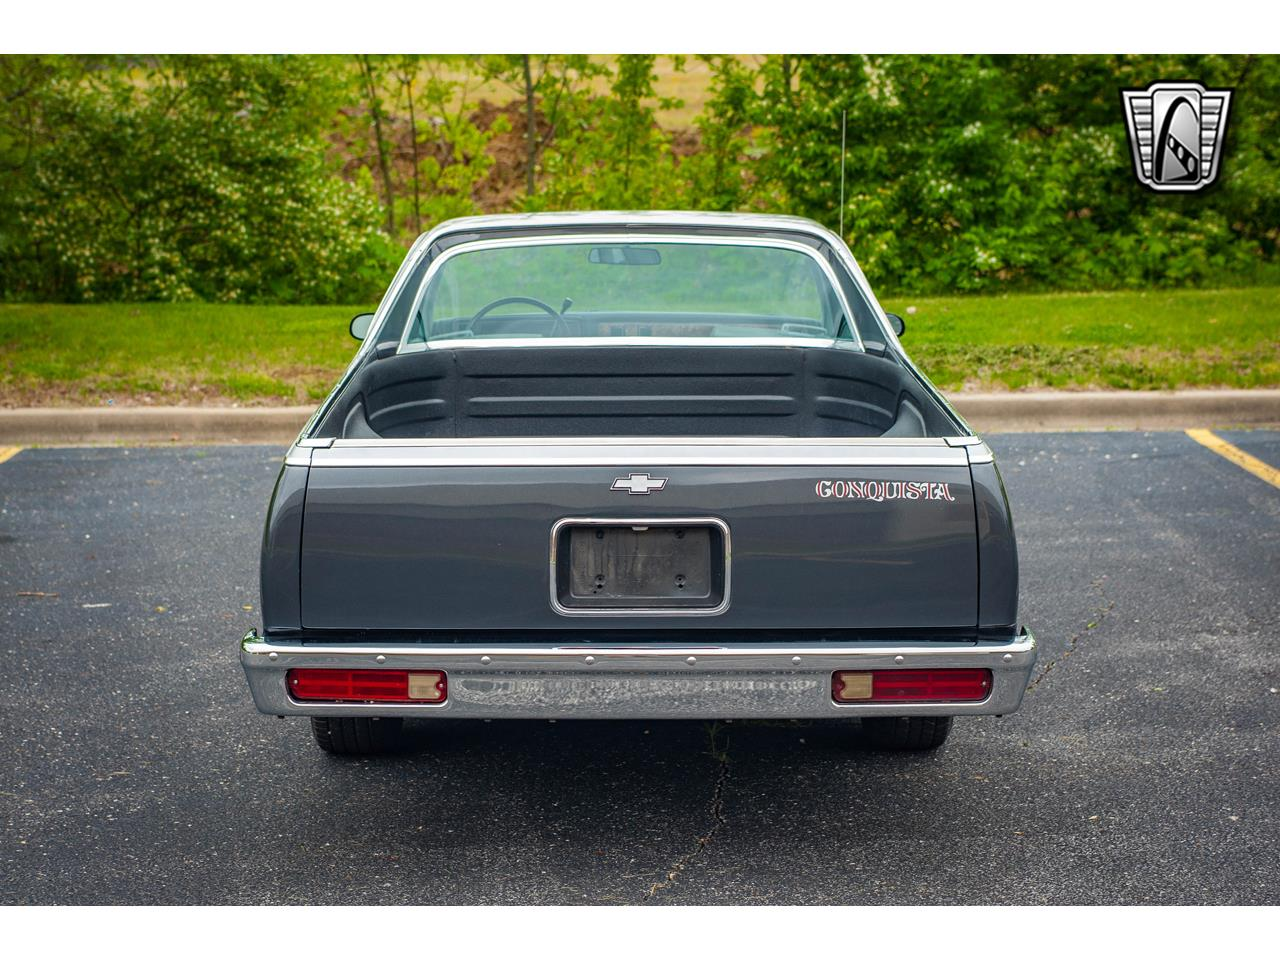 Large Picture of '82 El Camino located in Illinois Offered by Gateway Classic Cars - St. Louis - QB9A